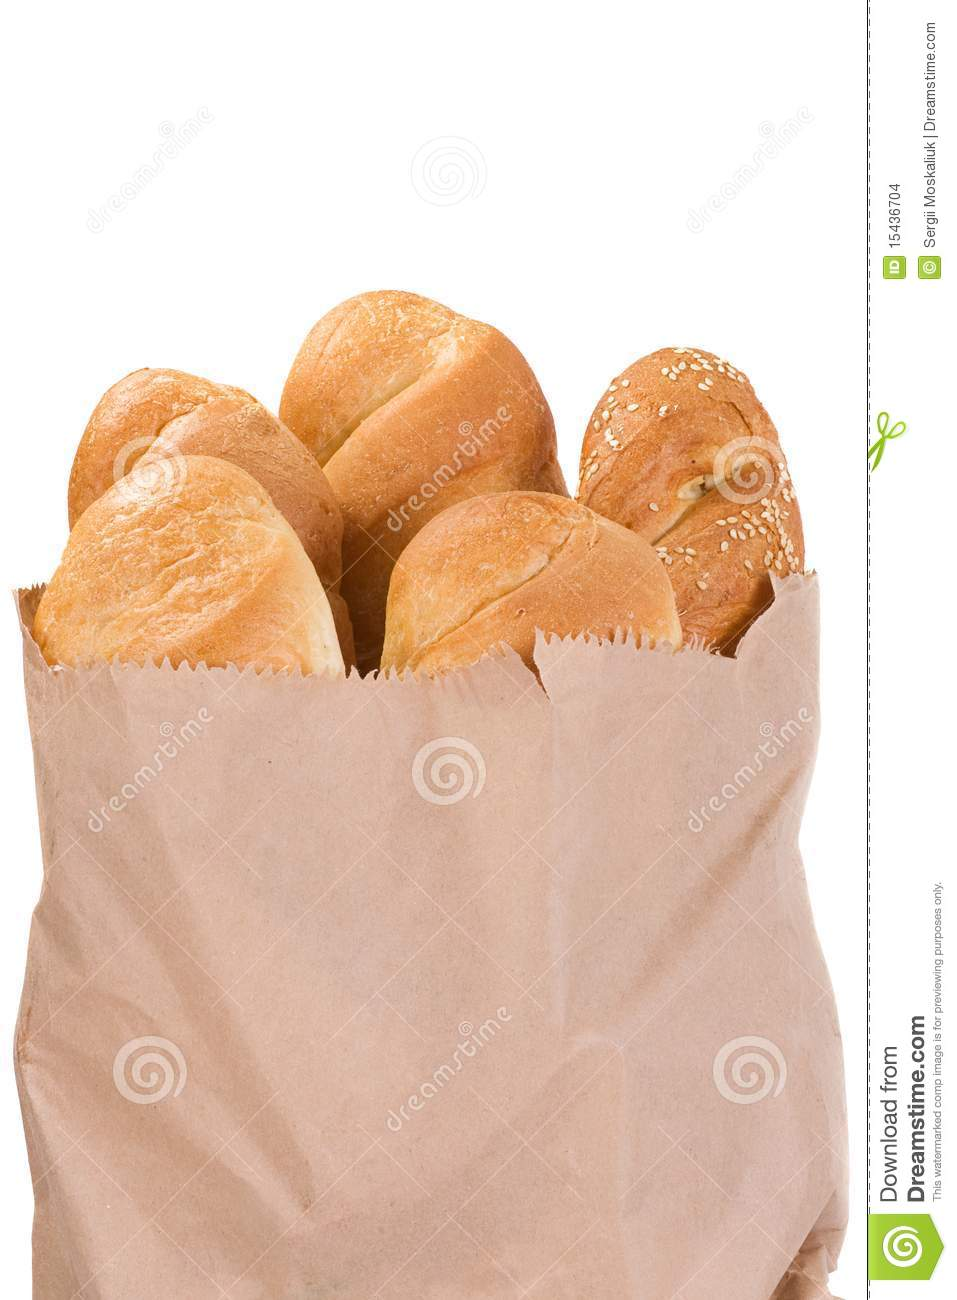 bread thesis